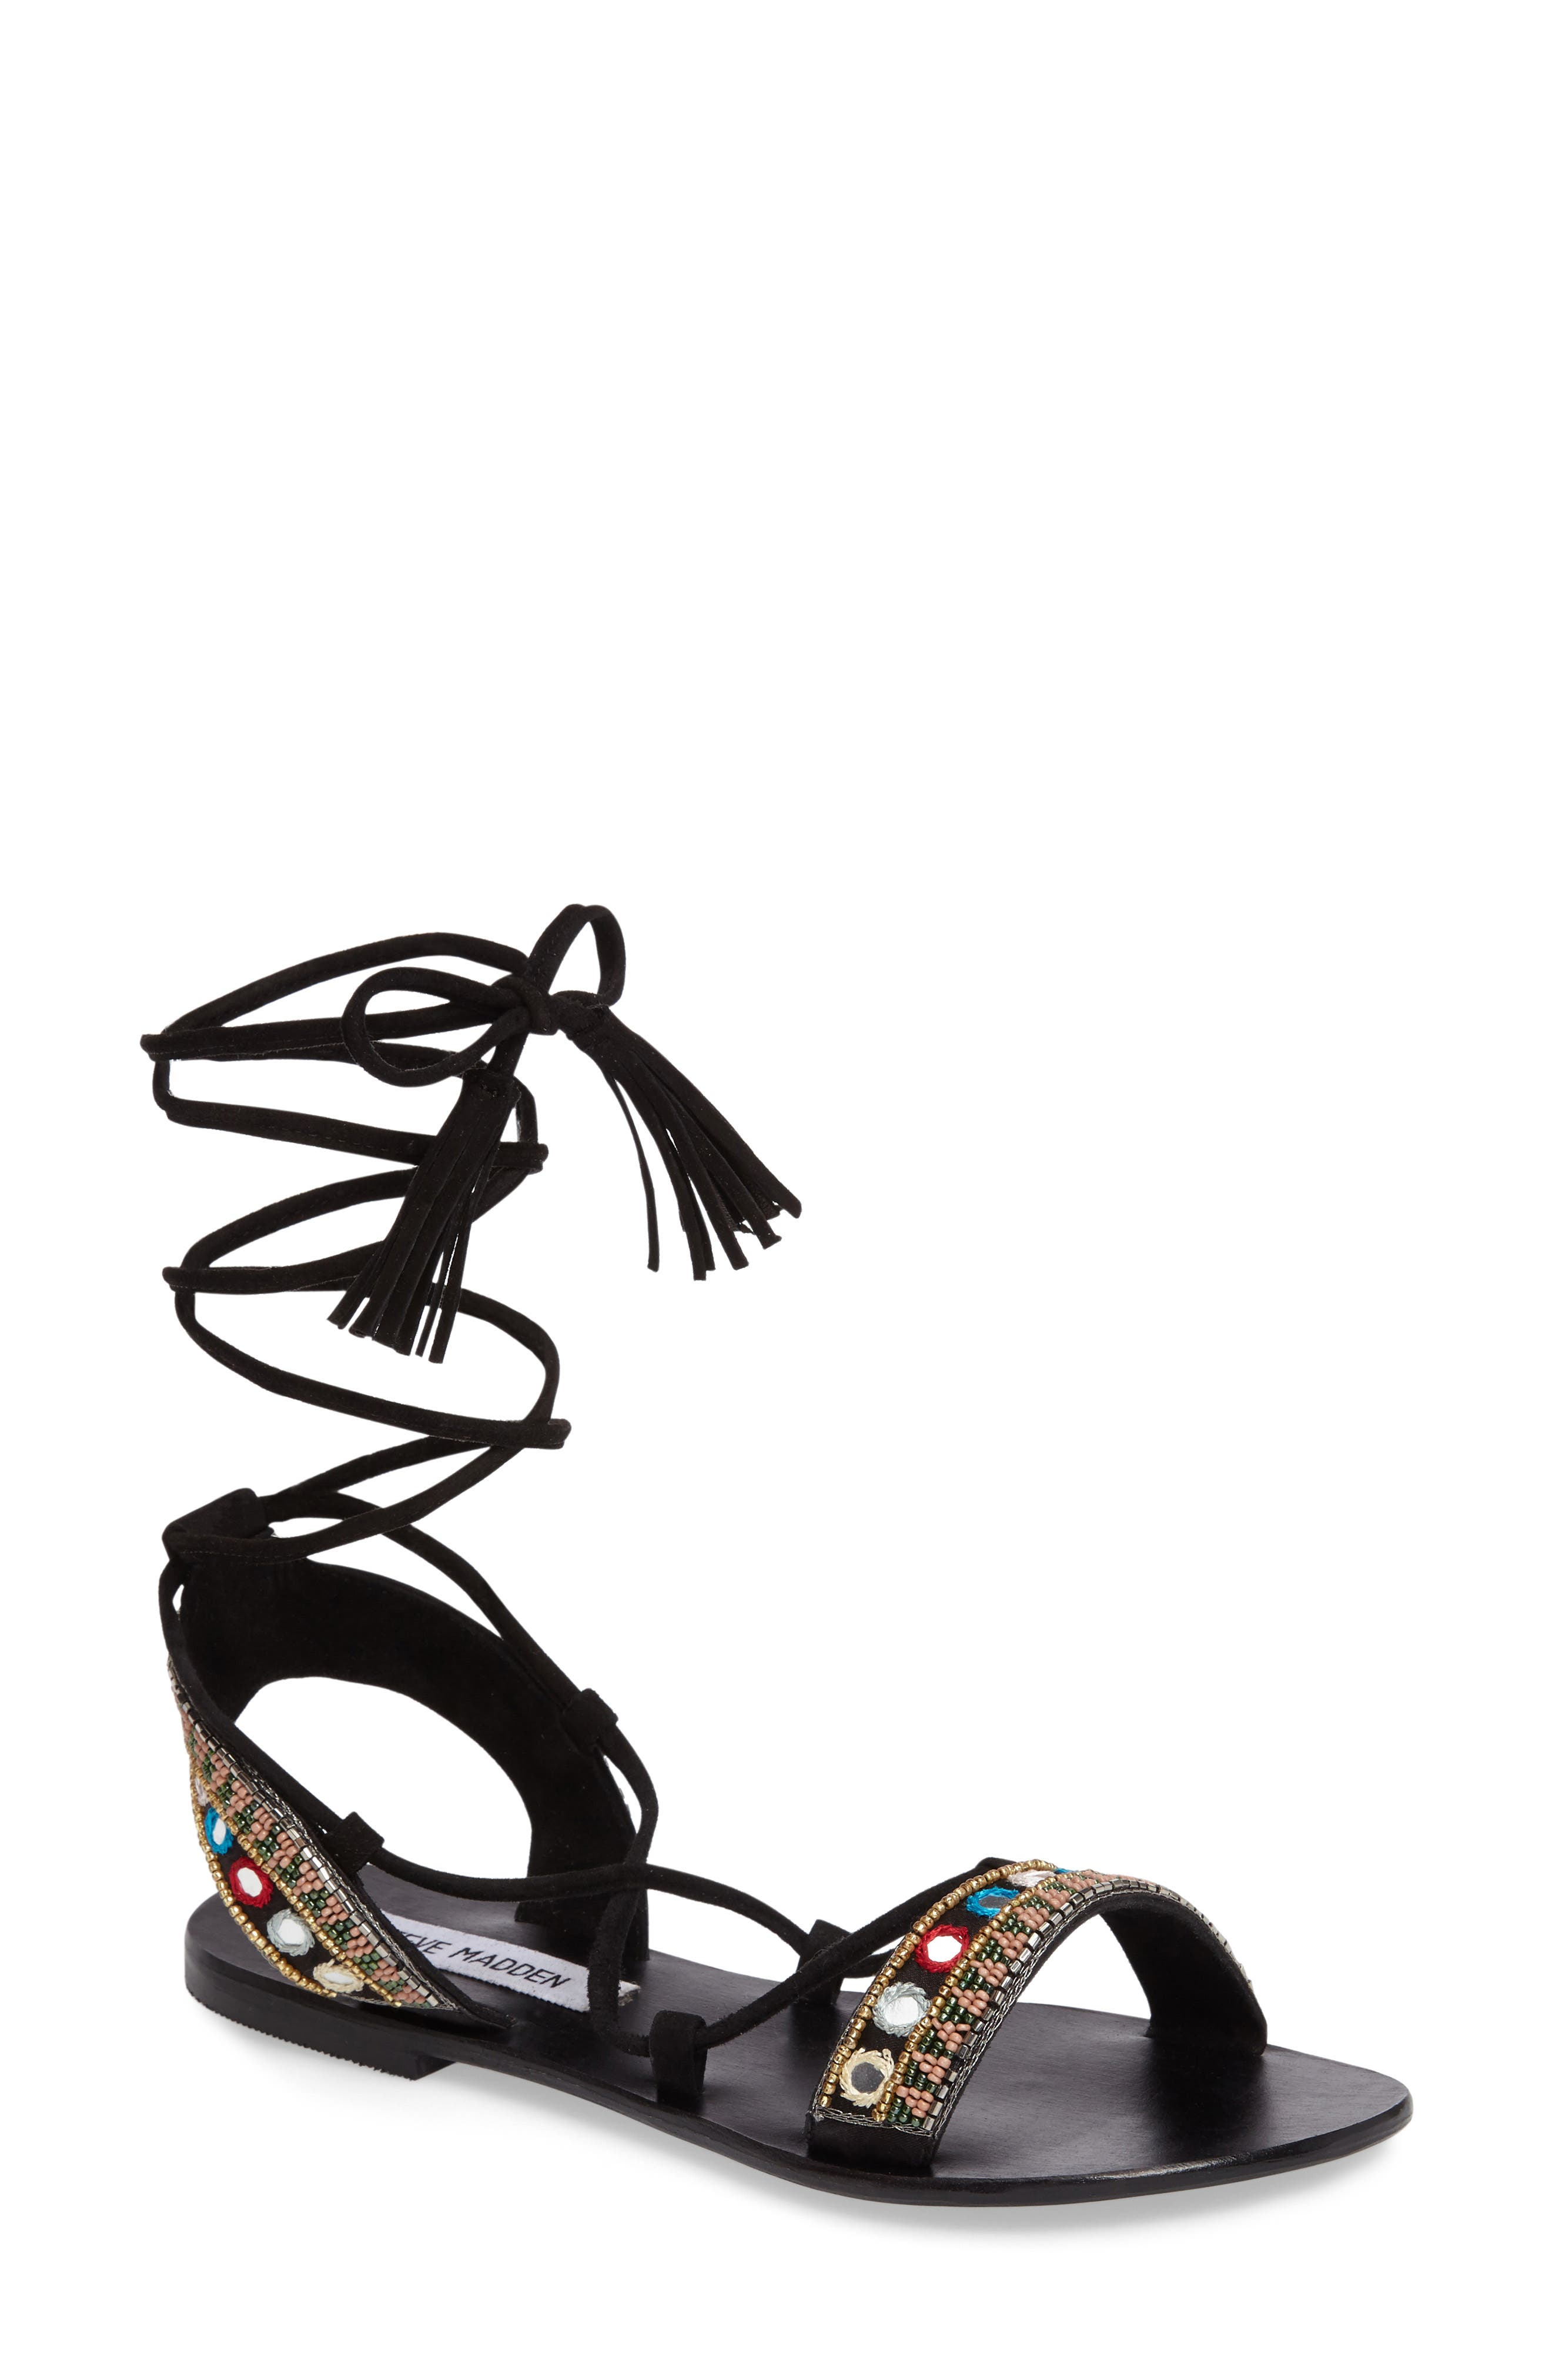 Alternate Image 1 Selected - Steve Madden Orva Embellished Ghillie Wrap Sandal (Women)